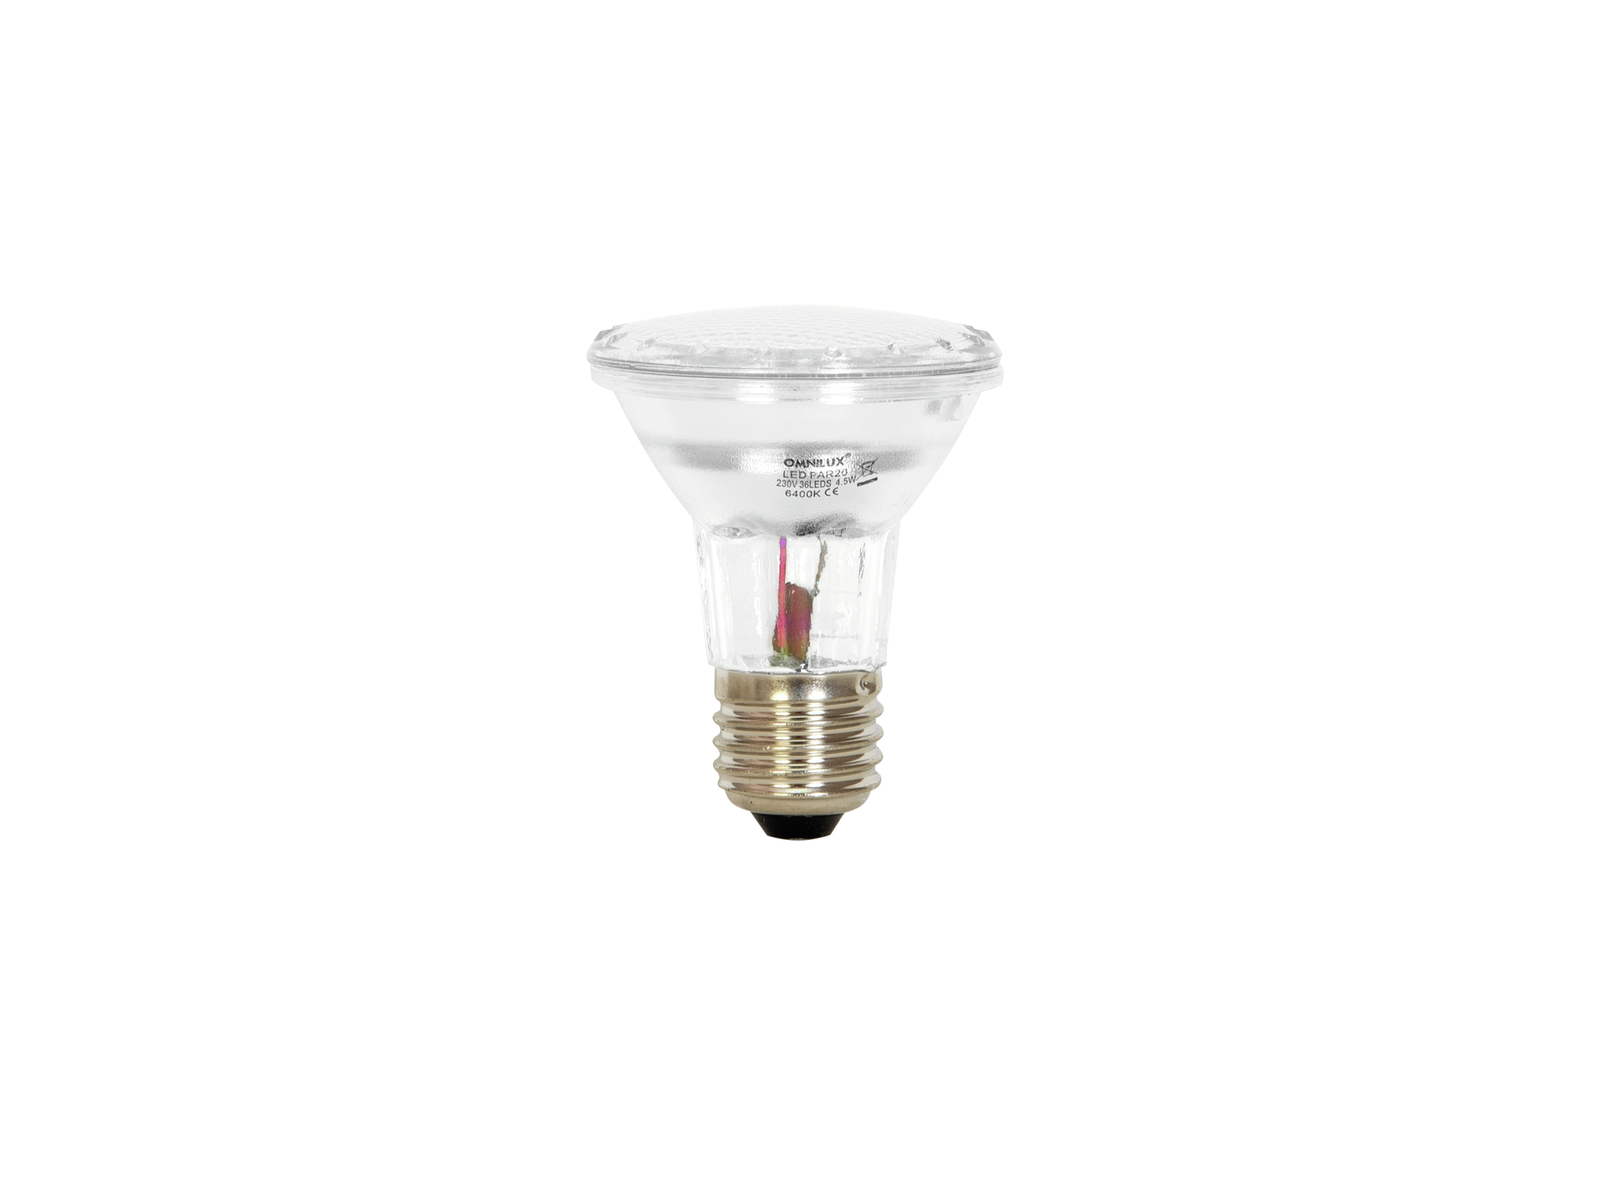 OMNILUX PAR-20 240V E-27 a 36 LED 5mm 6400K